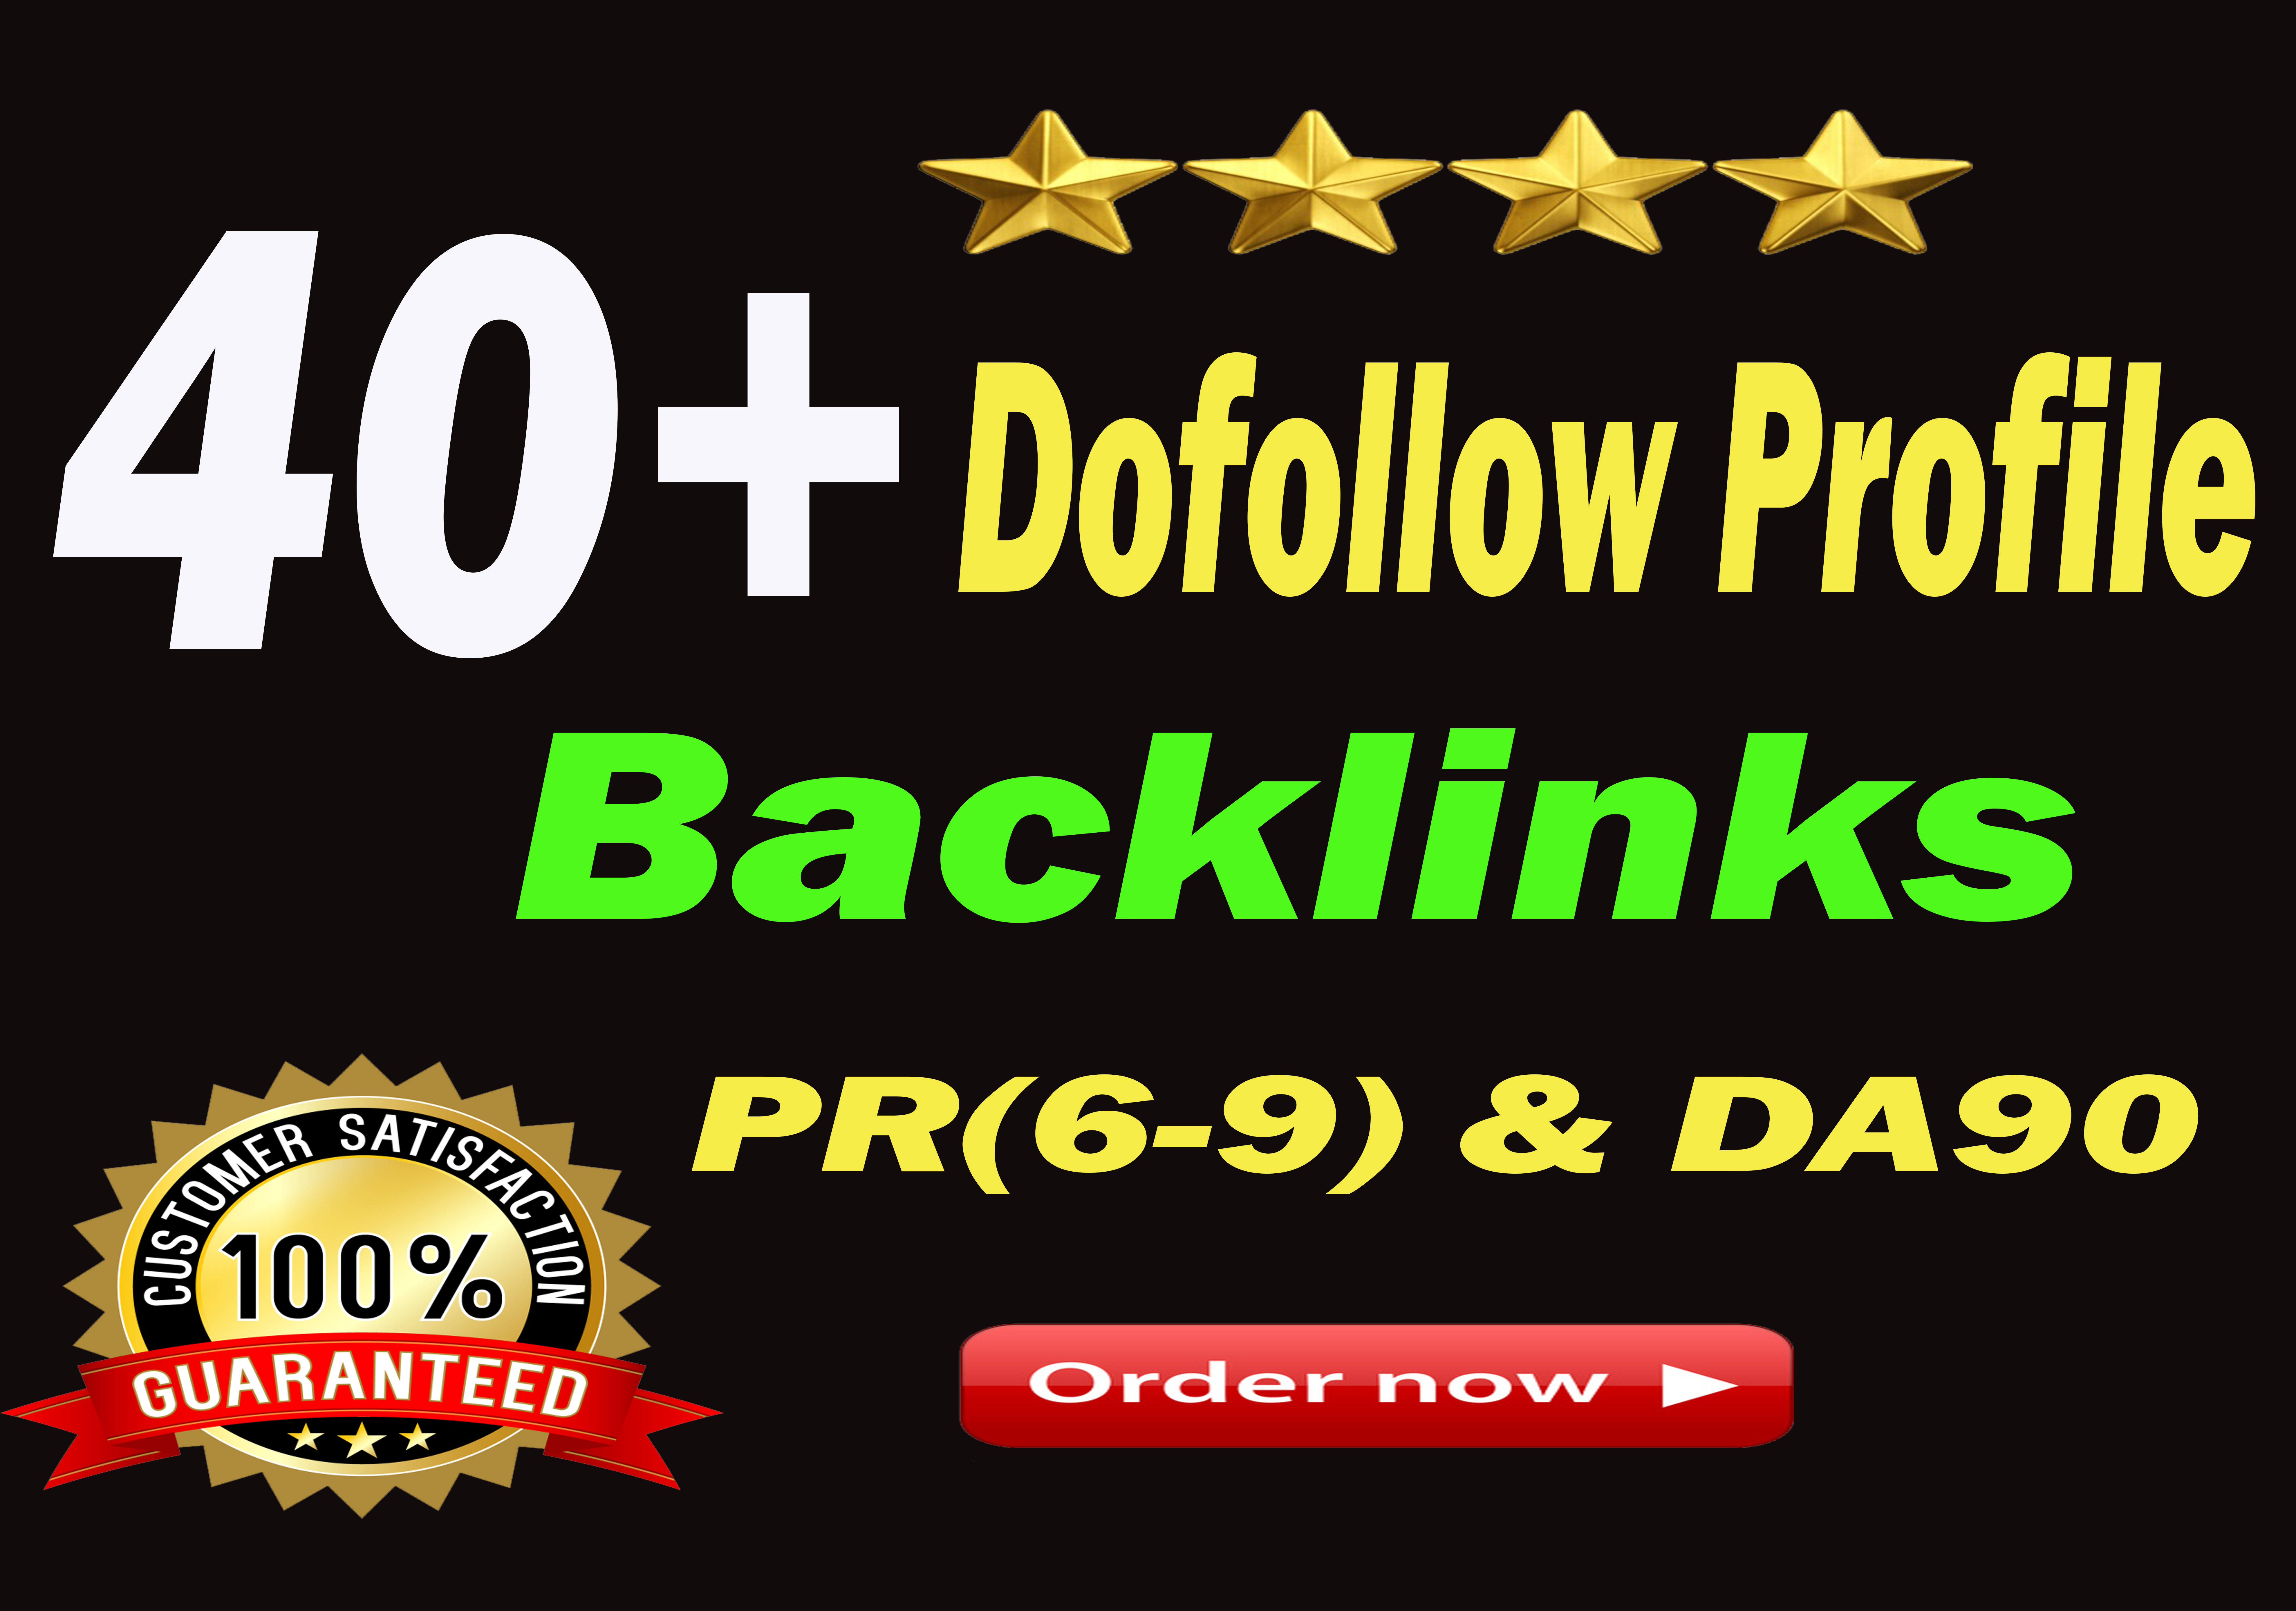 Manully Create 40+ DA 90 and pr9 High Quality Dofollow Profile Backlinks